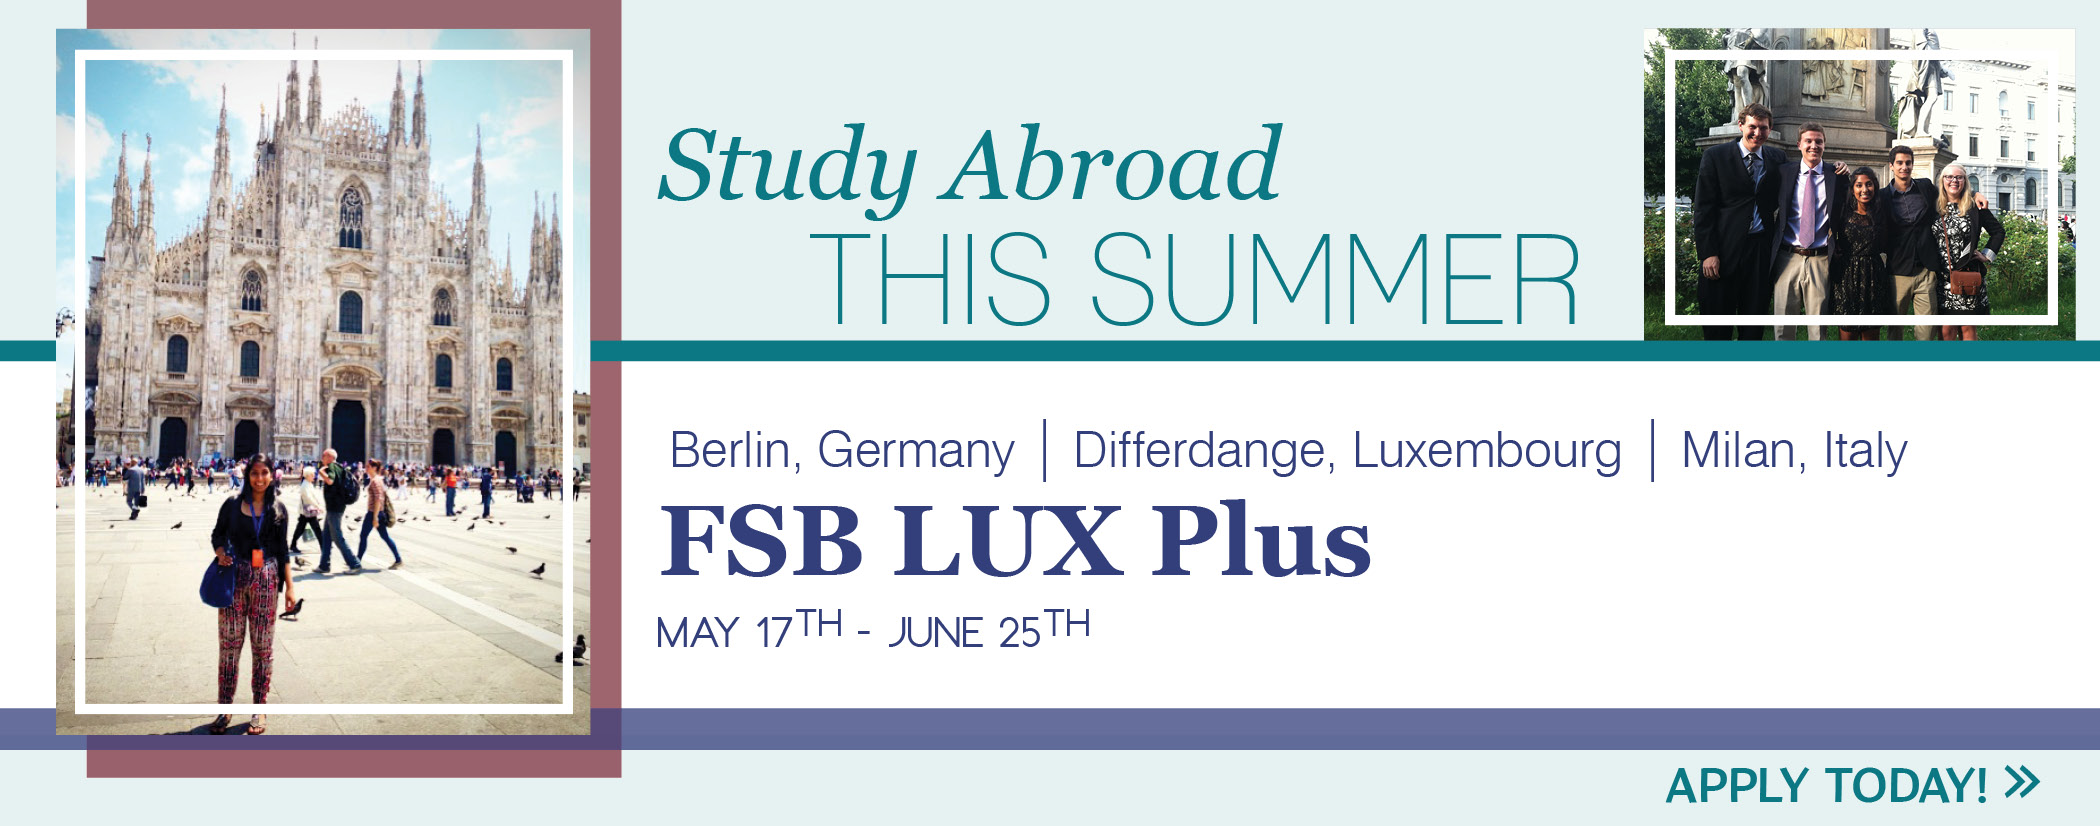 Study Abroad This Summer FSB Lux Plus  Berlin, Differdange, Milan -May 17 to June 25, 2016